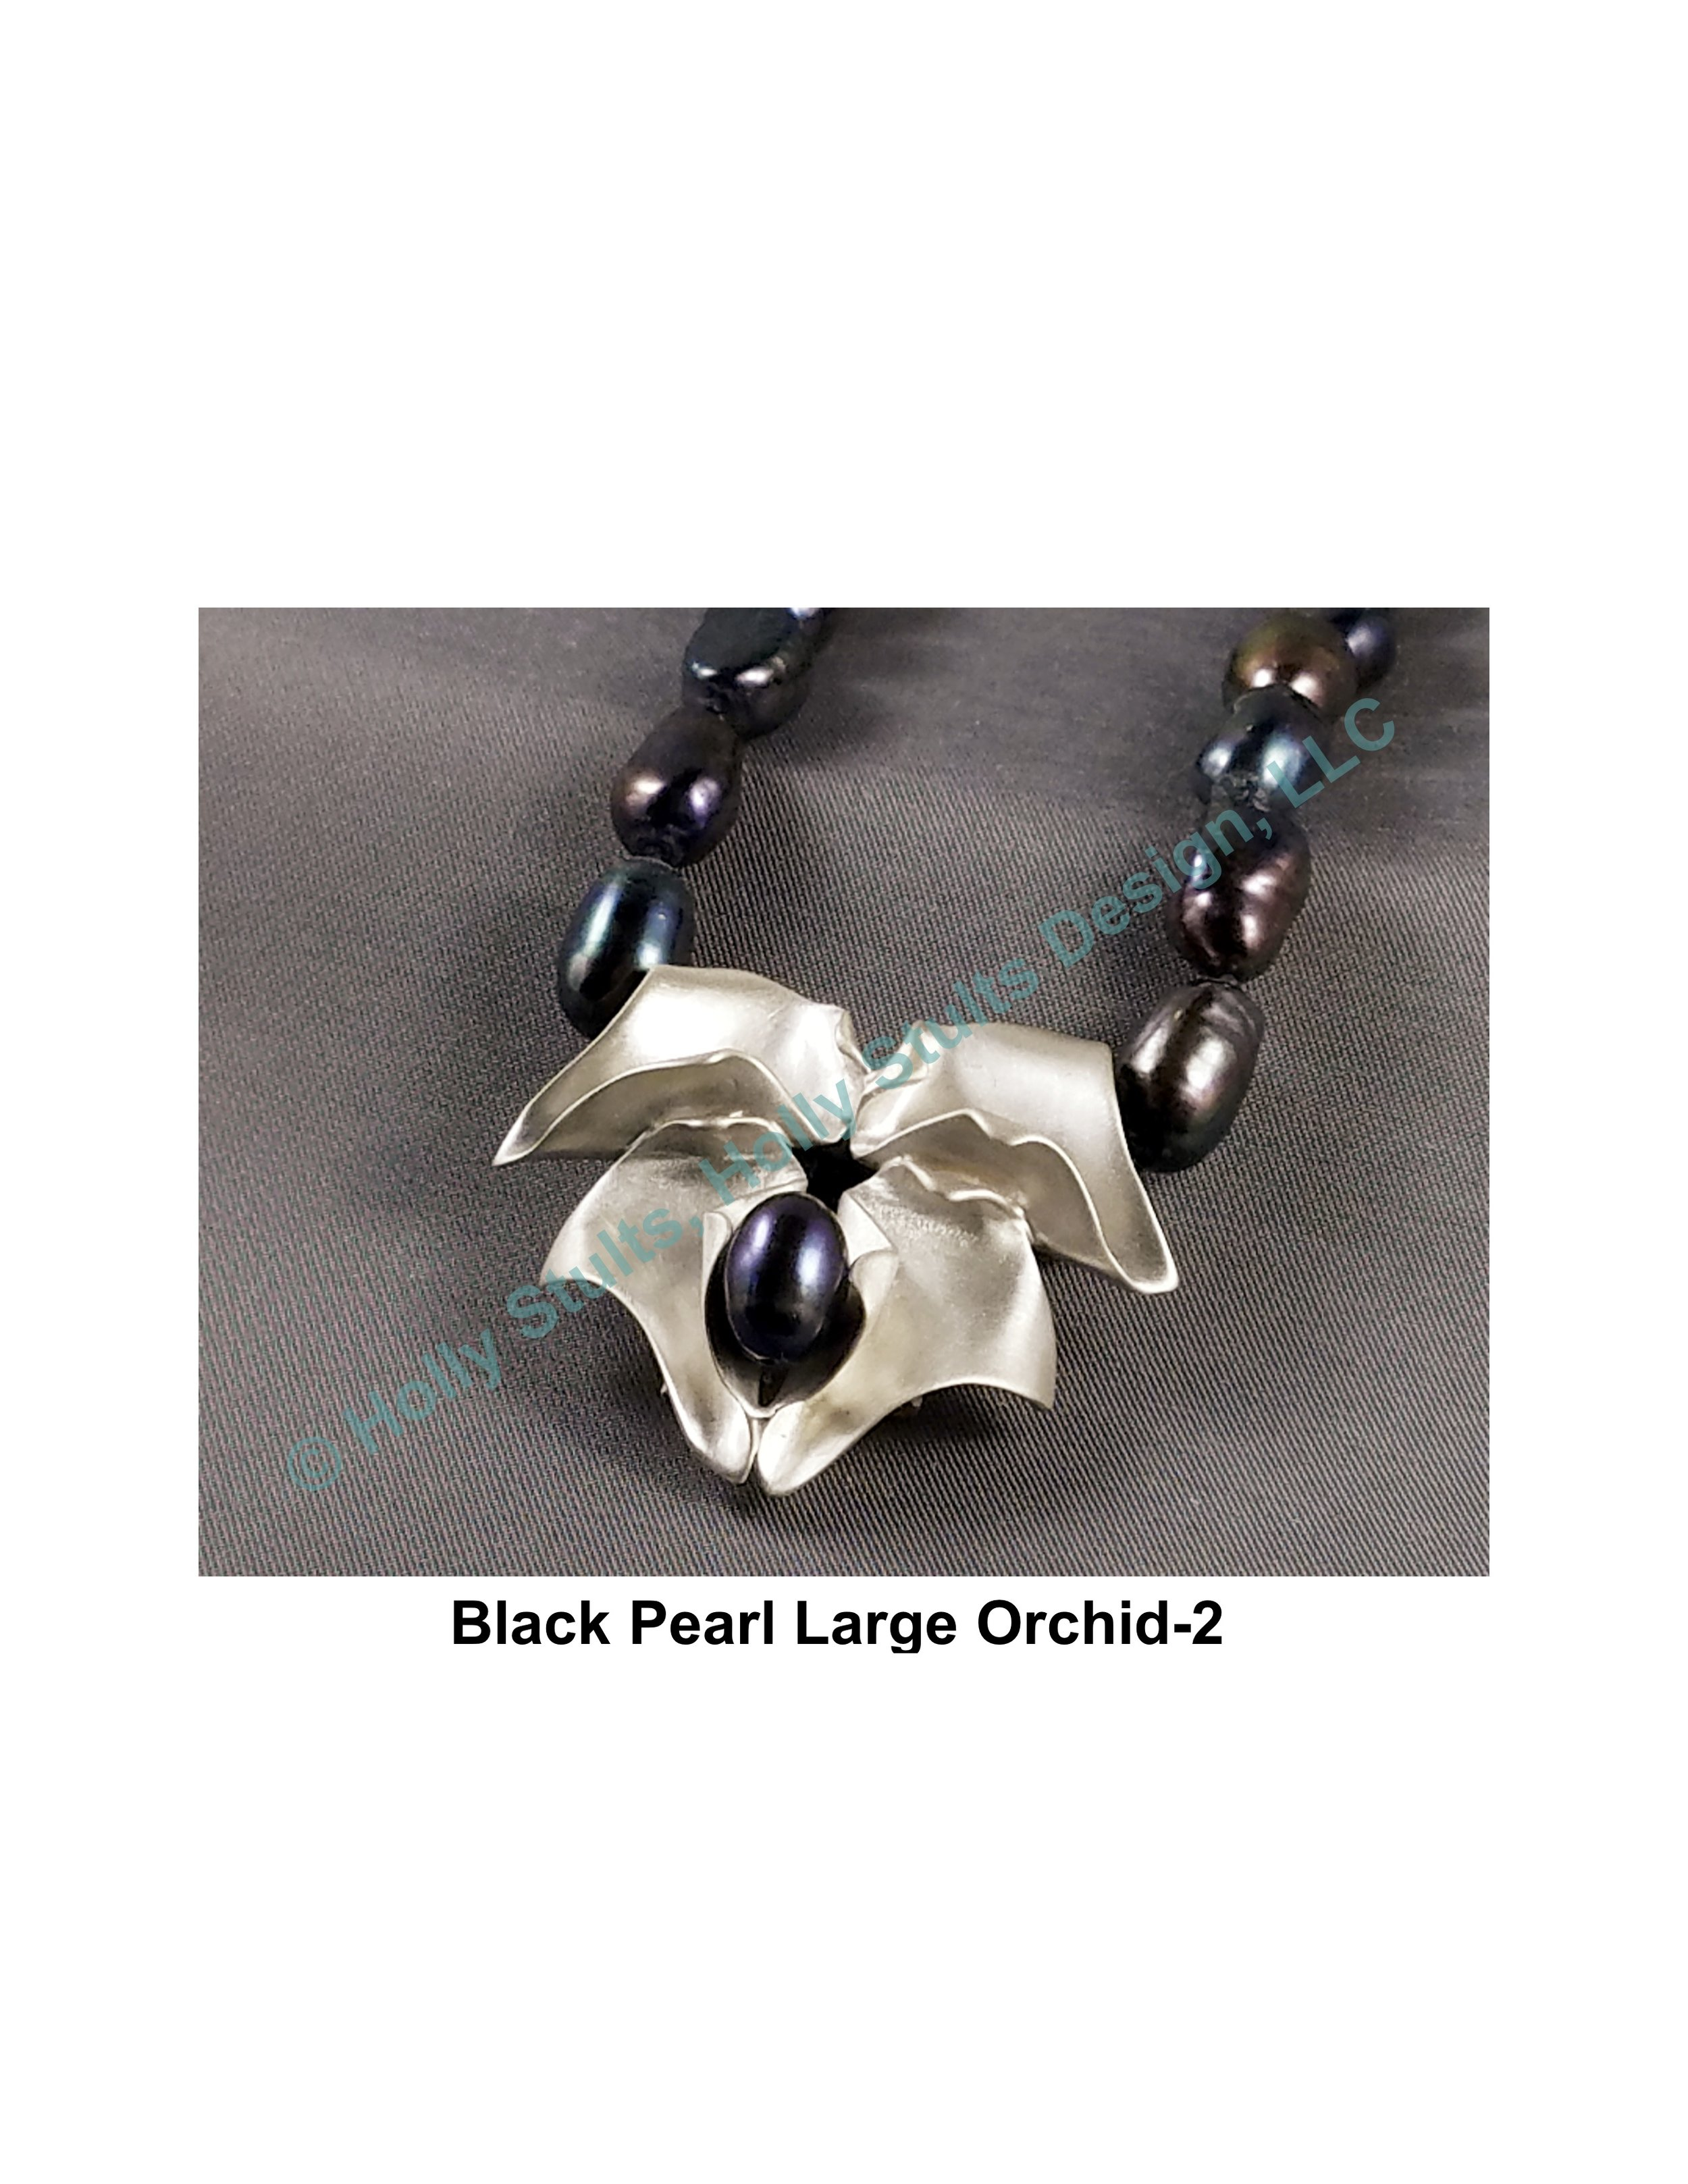 Black Pearl Large Orchid-2.jpg